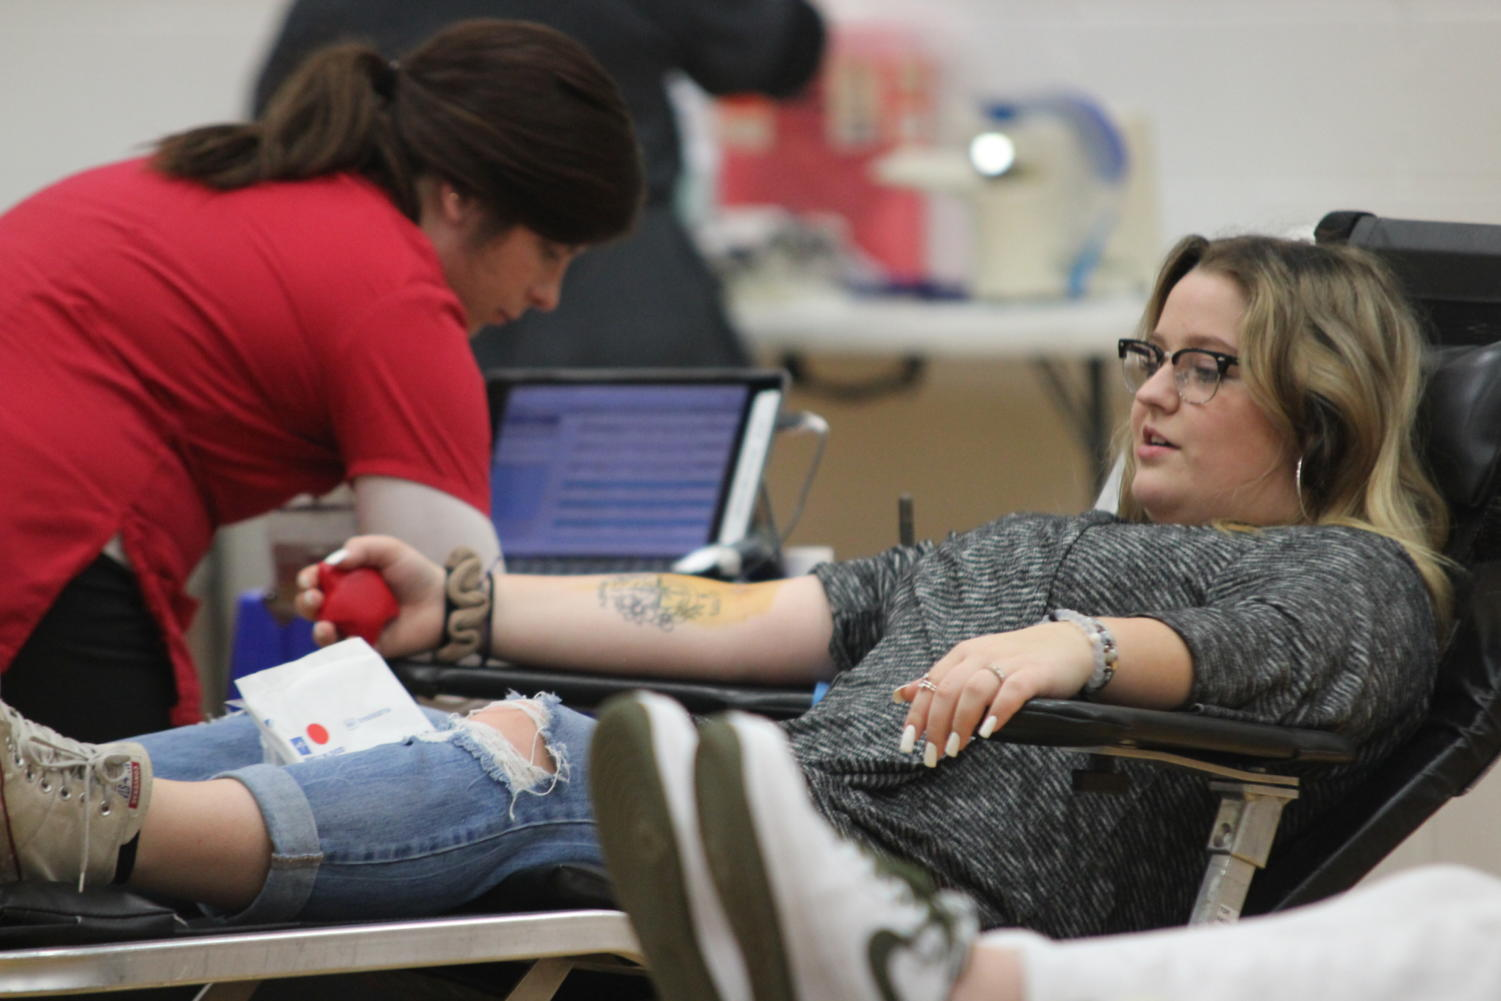 Senior Sydney Johnson prepares to give blood. Johnson was one of 63 individuals to donate blood for the event.